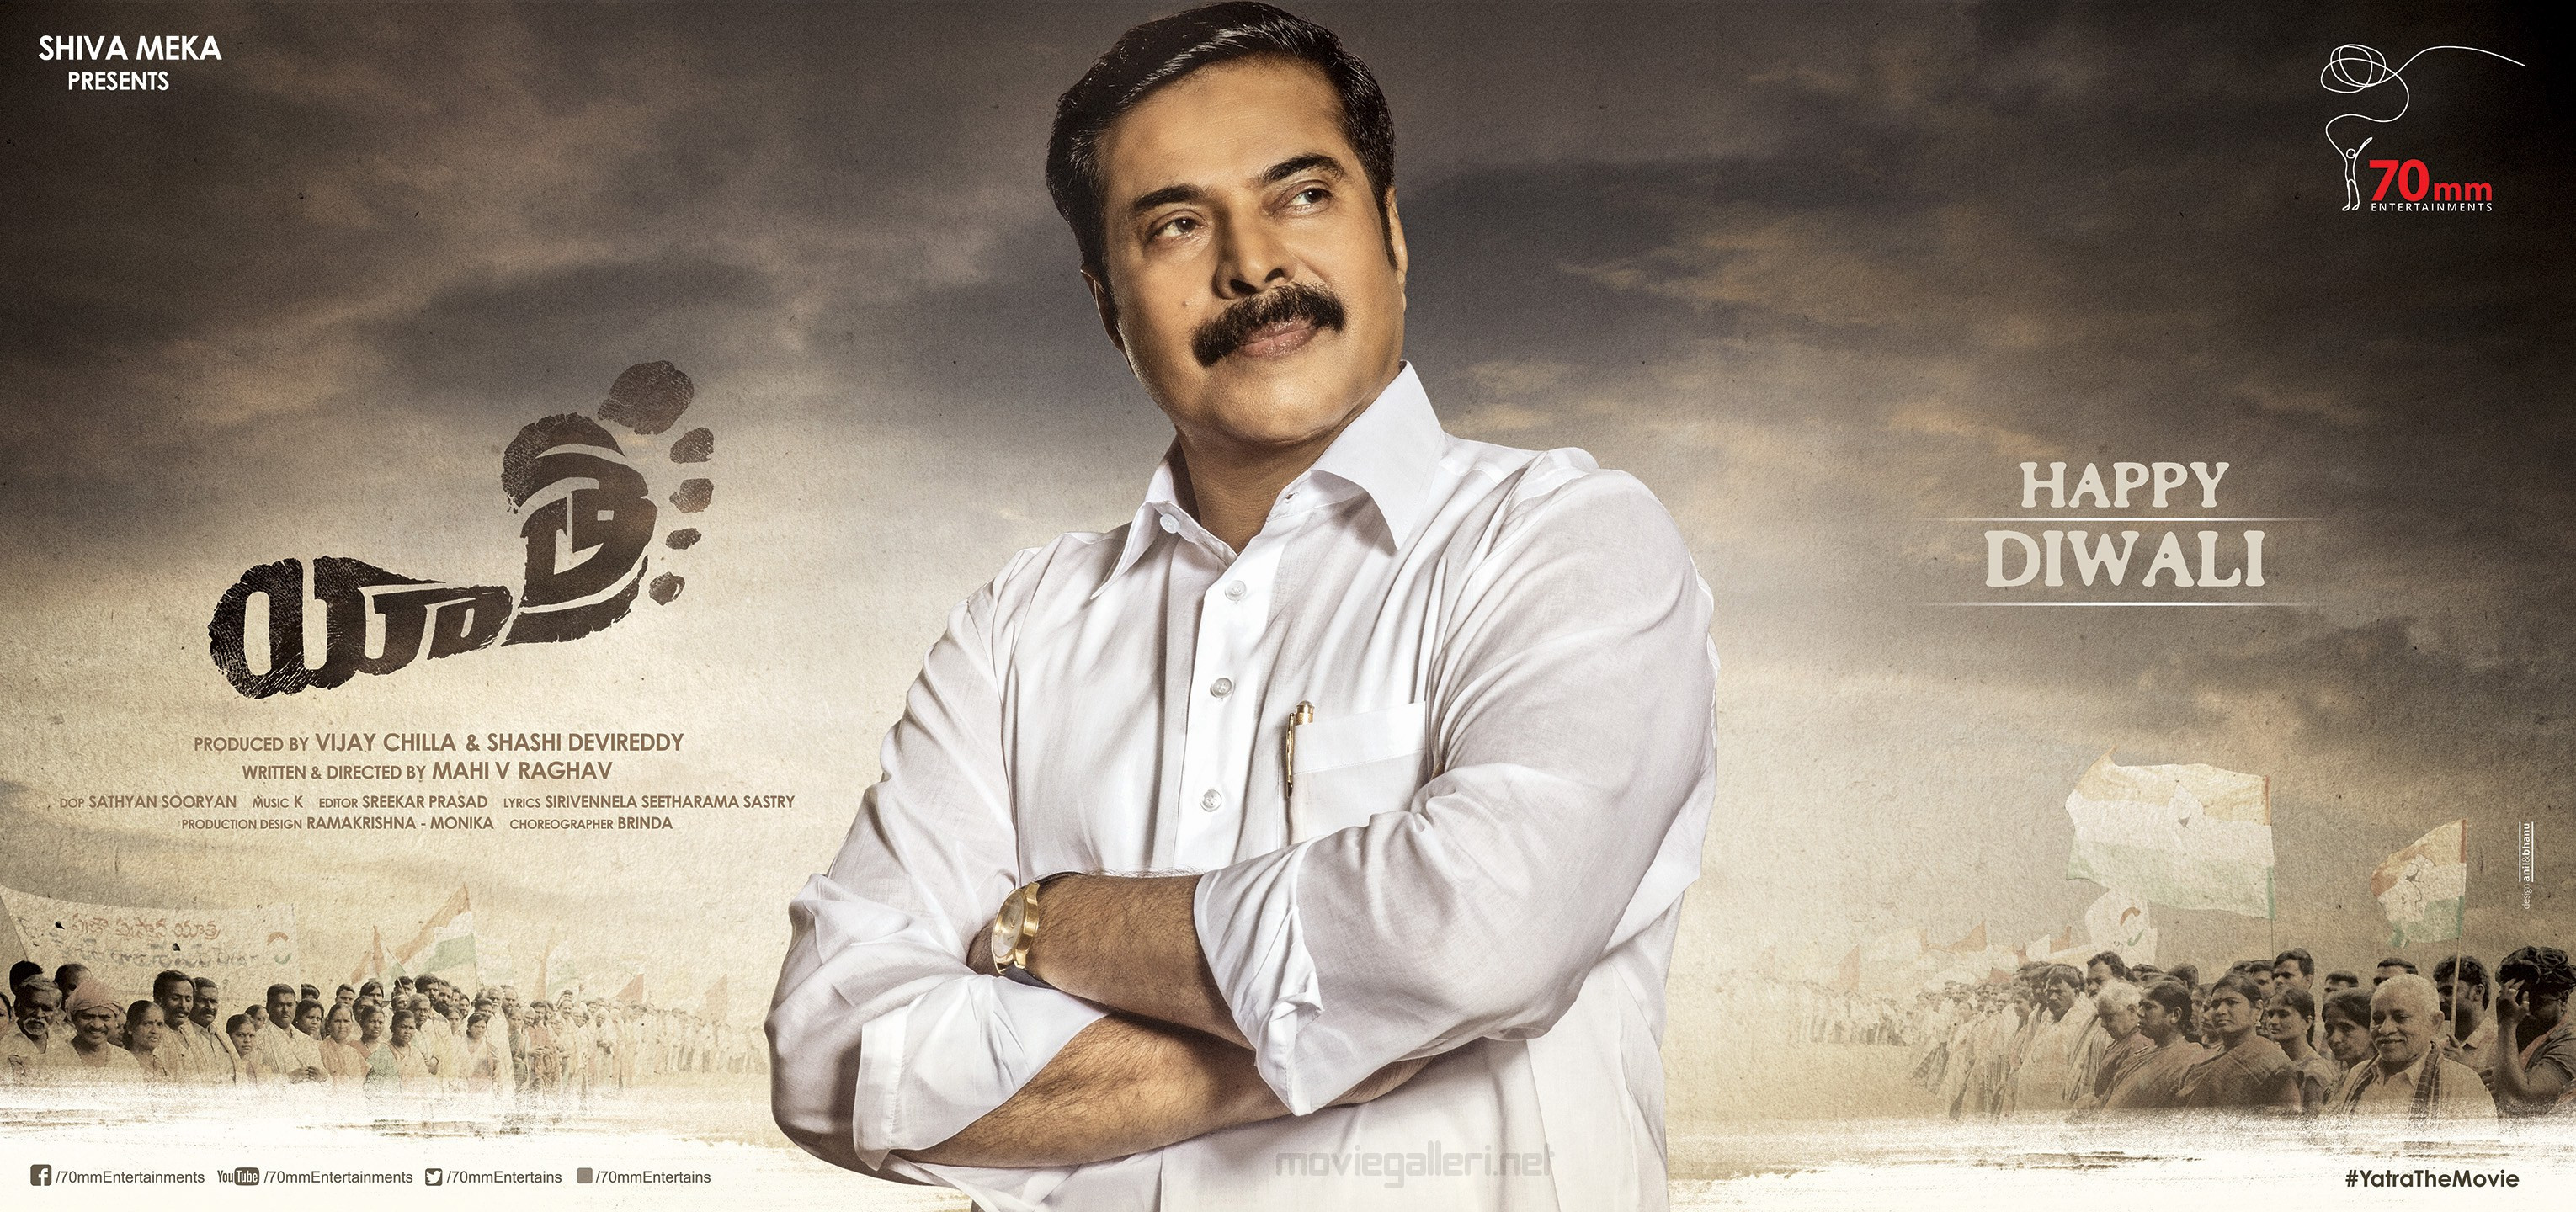 Mammootty Yatra Movie Diwali Wishes Wallpaper HD